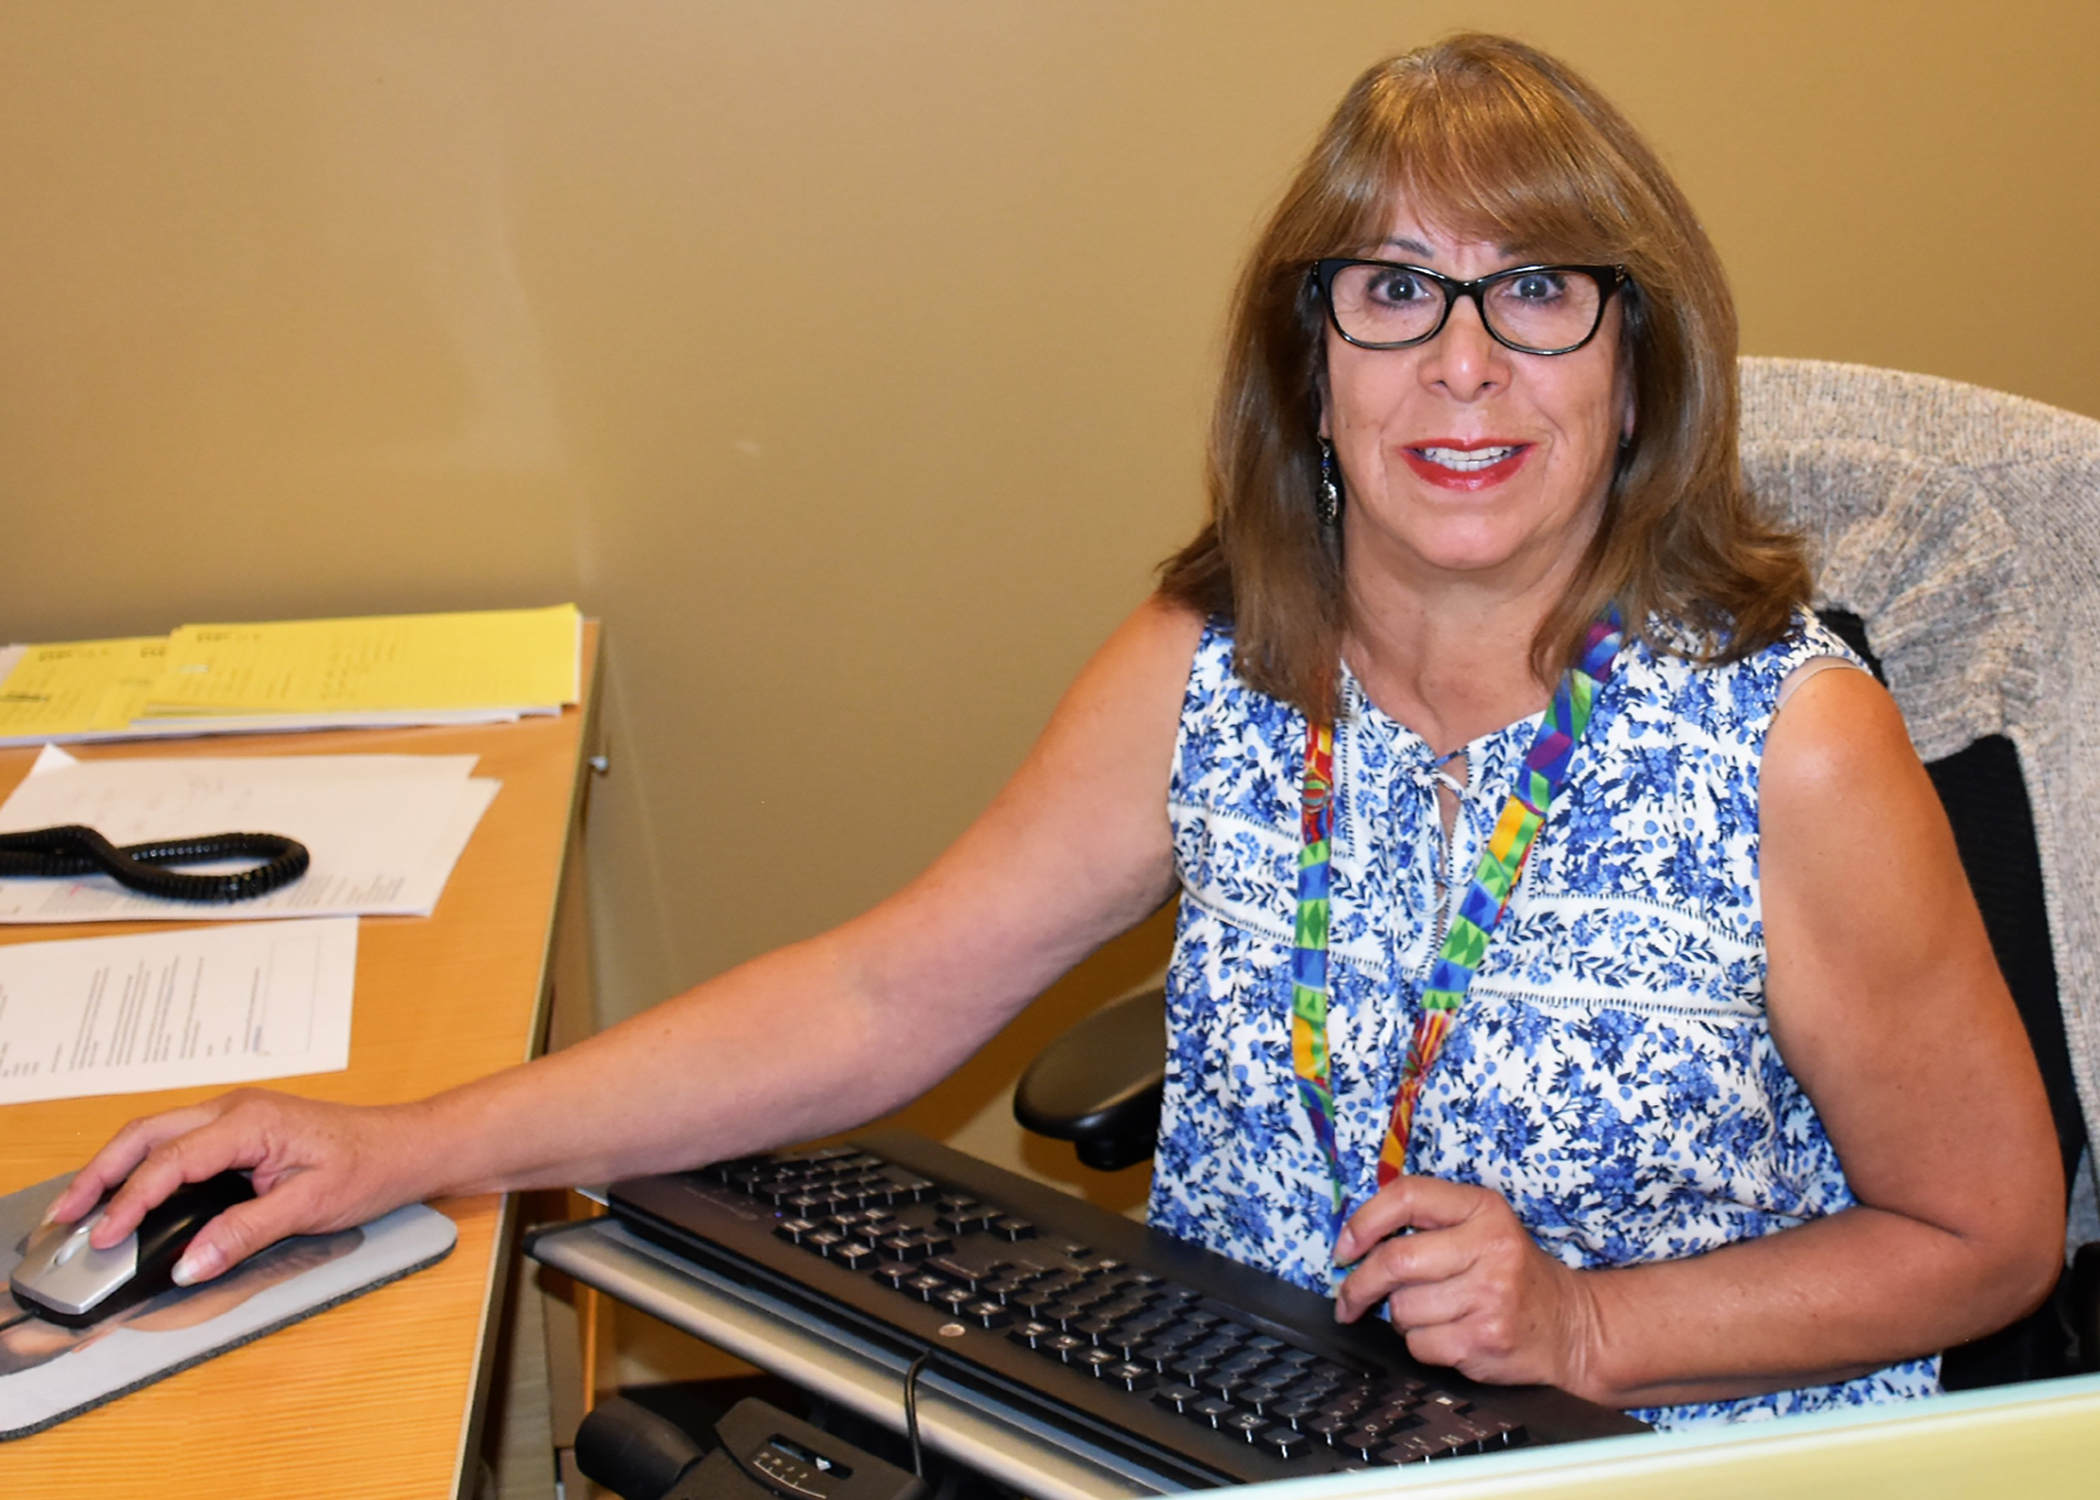 Photo of Doreen Padilla, Administrative Assist for the North Area, New Mexico Employee of the Month for September